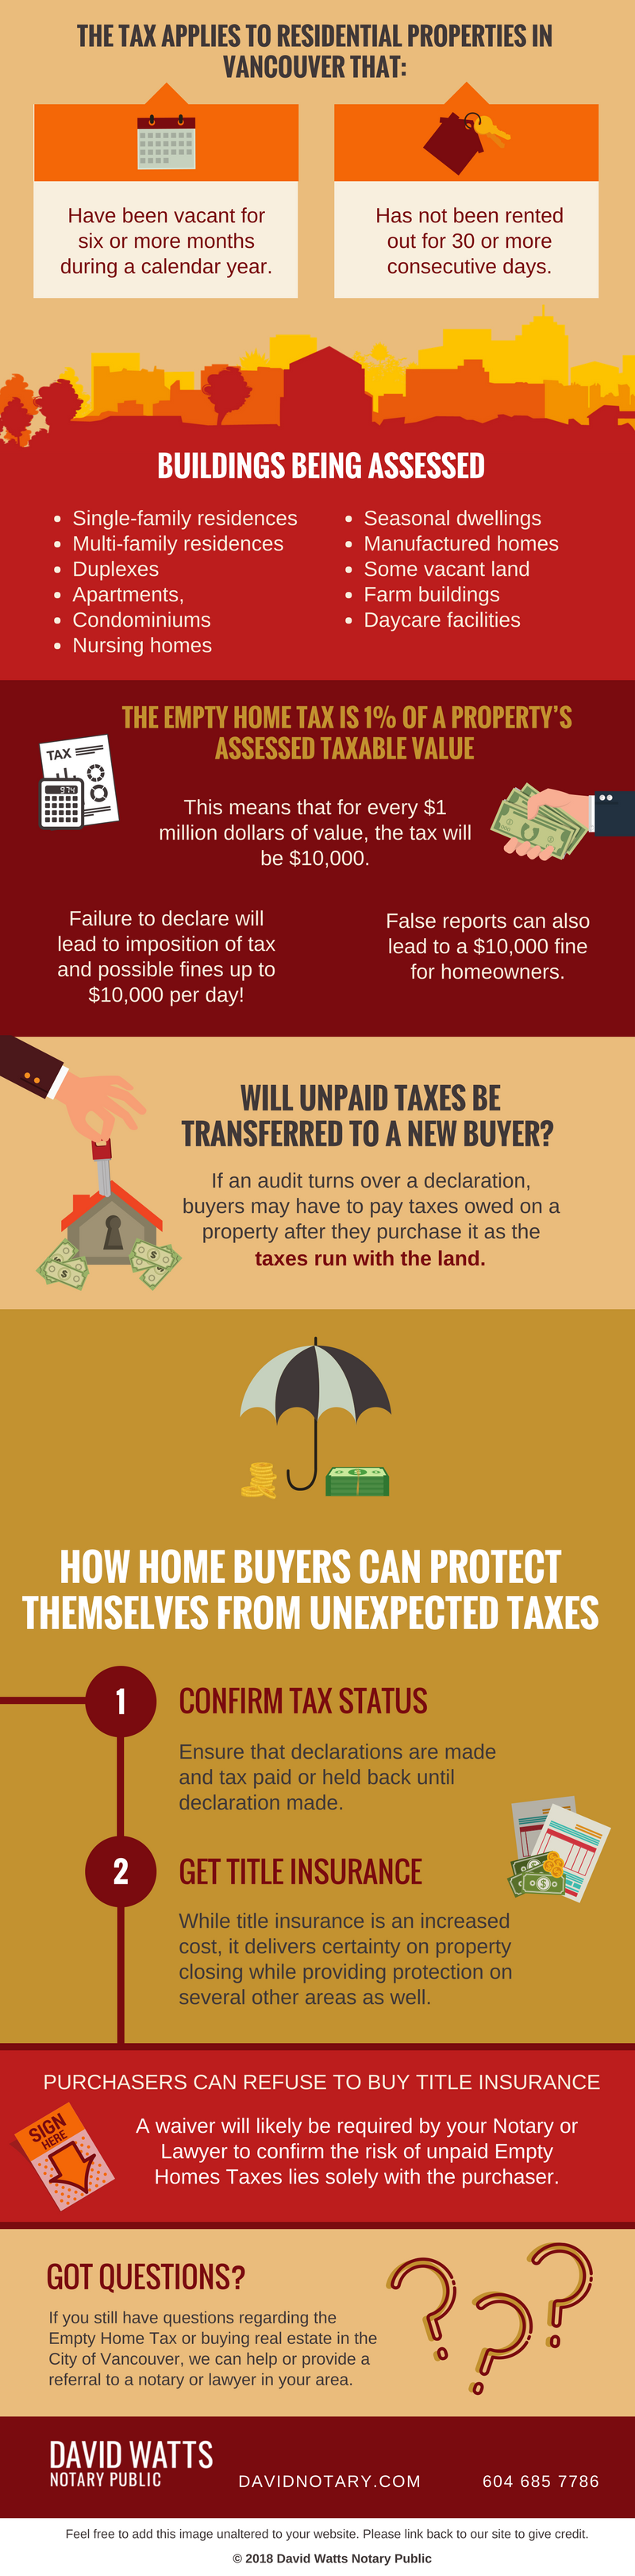 the home buyers quick guide to vancouvers empty home tax 1 copy